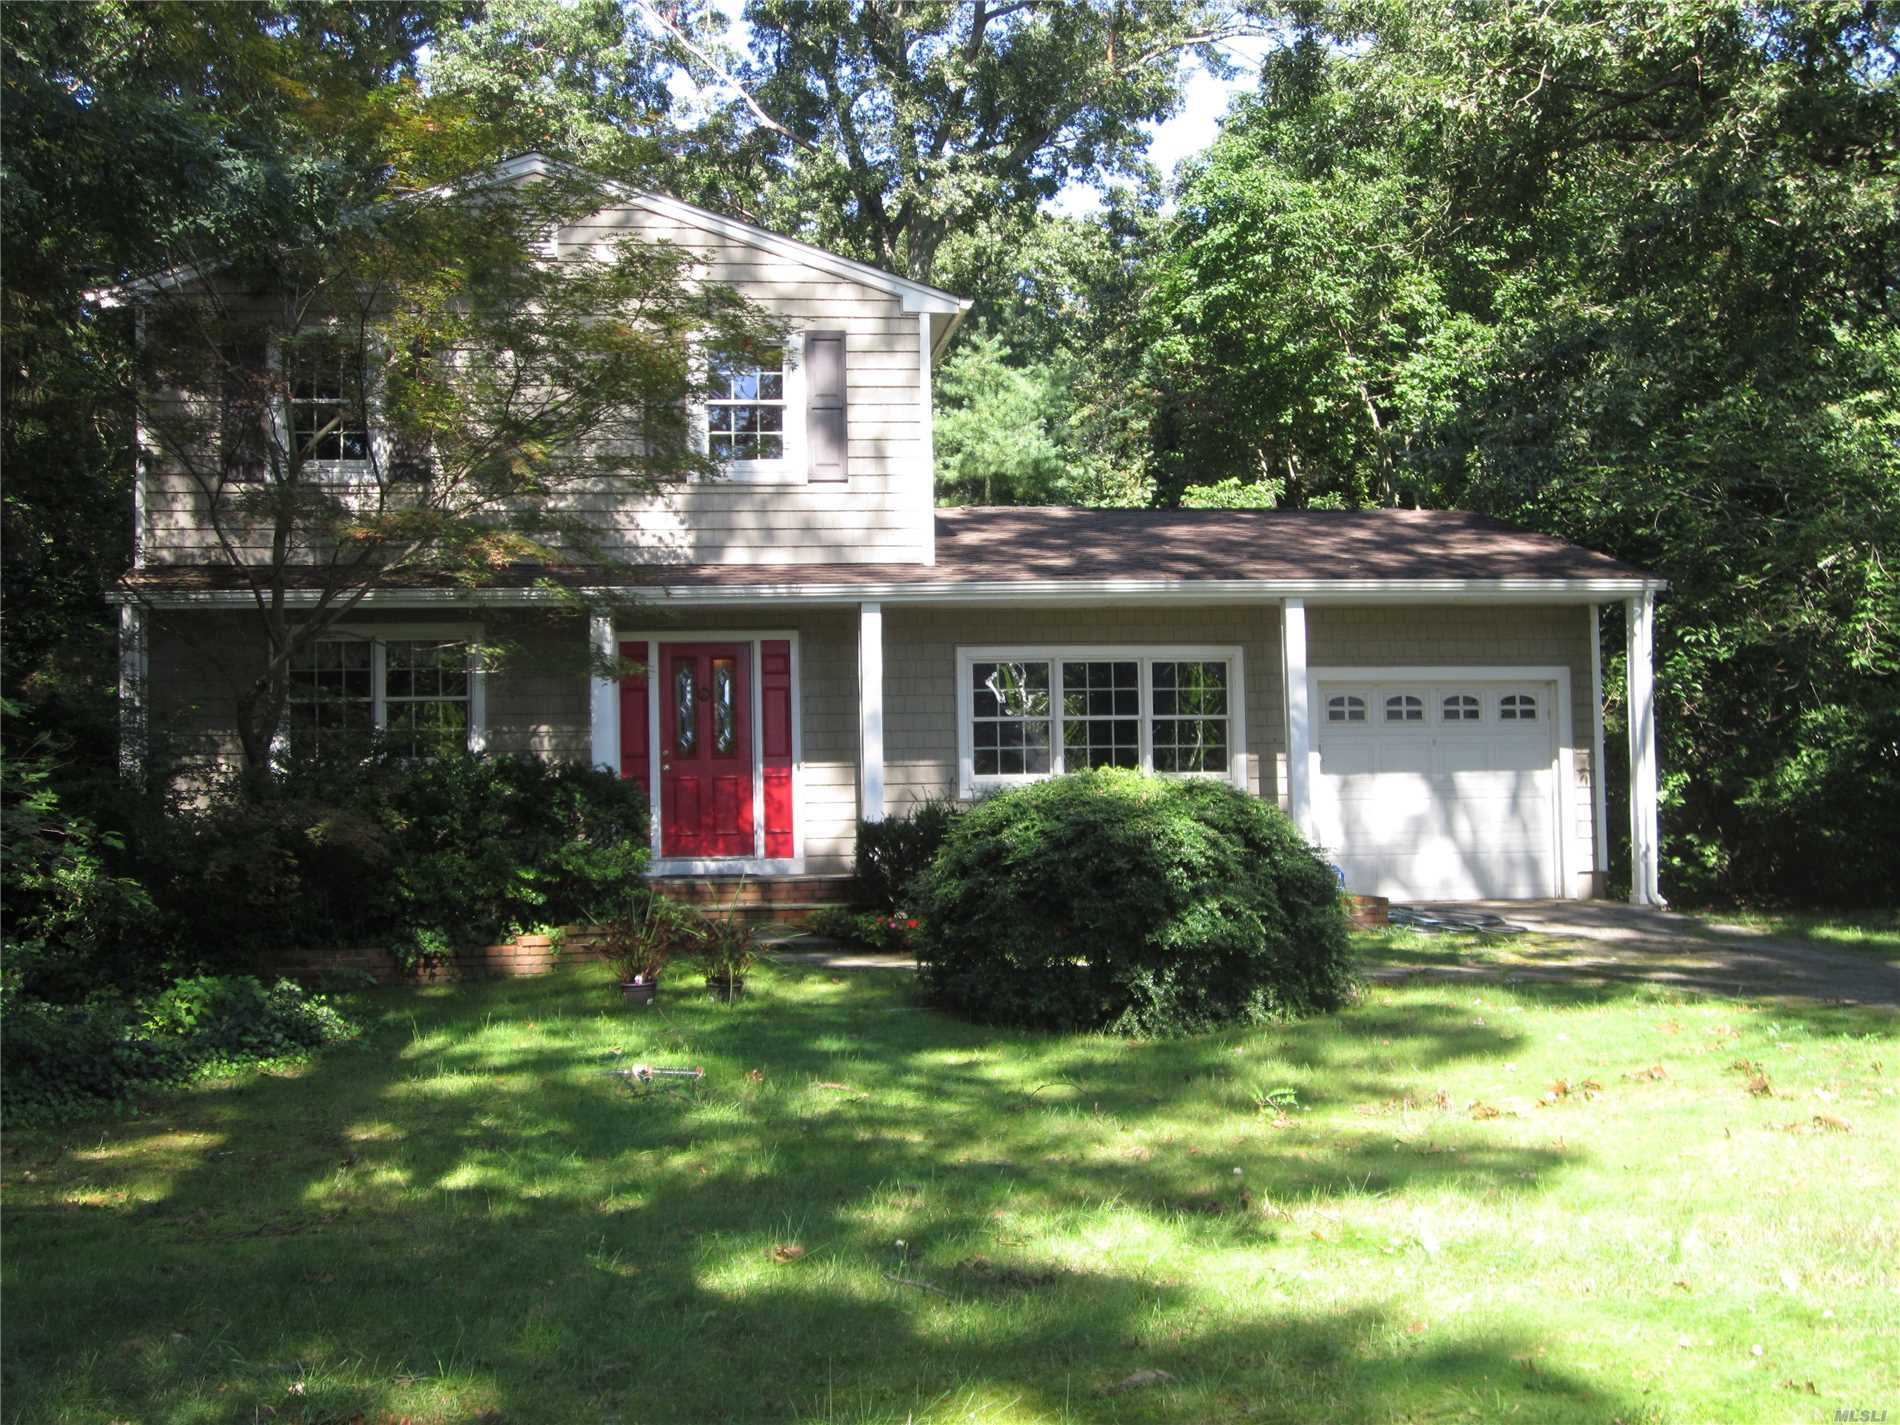 Great Opportunity To Own This Spacious 3 Bedroom, 2.5 Bathroom Colonial Home In St. James. Large Property. Home Sold As Is, Needs Tlc, Hardwood Floors, Some Updated Exterior, Master Br W.Master Bathroom, Smithtown Sd, As Is No Representations, Don't Miss This One!